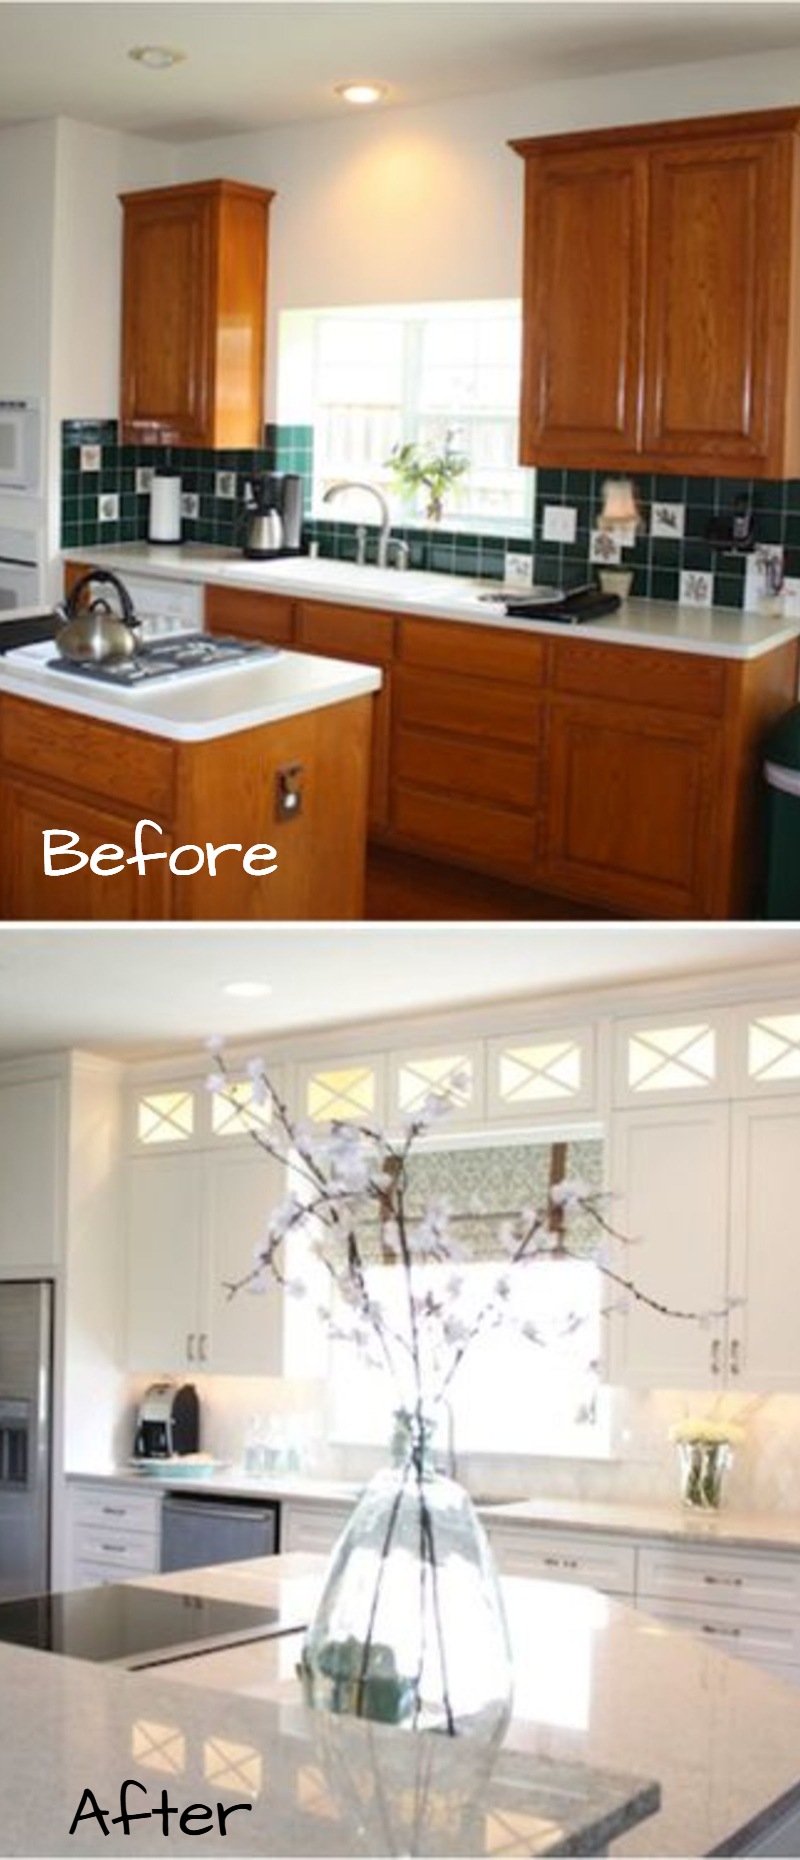 Small Kitchen Remodel Before And After Pictures Of Makeovers Kitchenideas Farmhousedecor